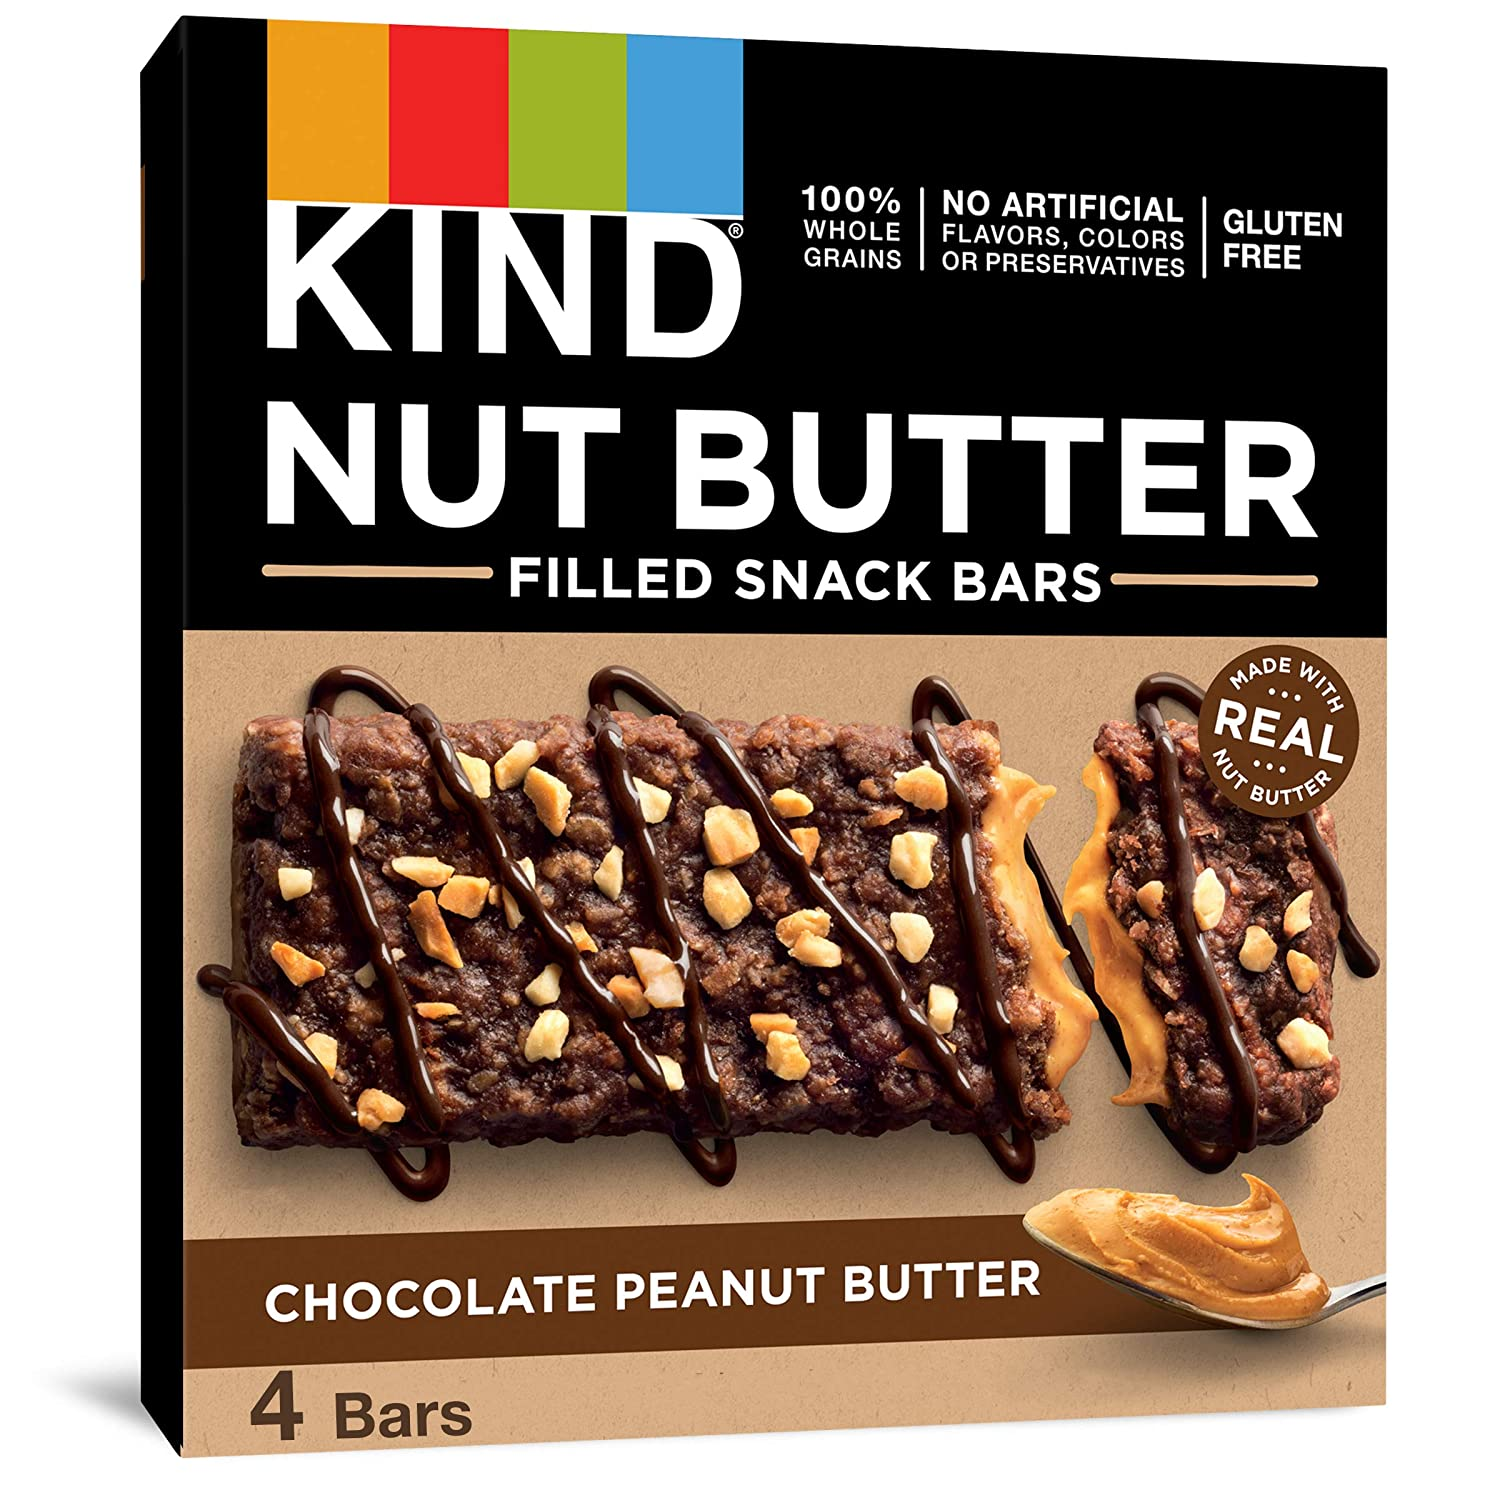 KIND Nut Filled Bars, Chocolate Peanut Butter, 1.3 Ounce, 32 Count